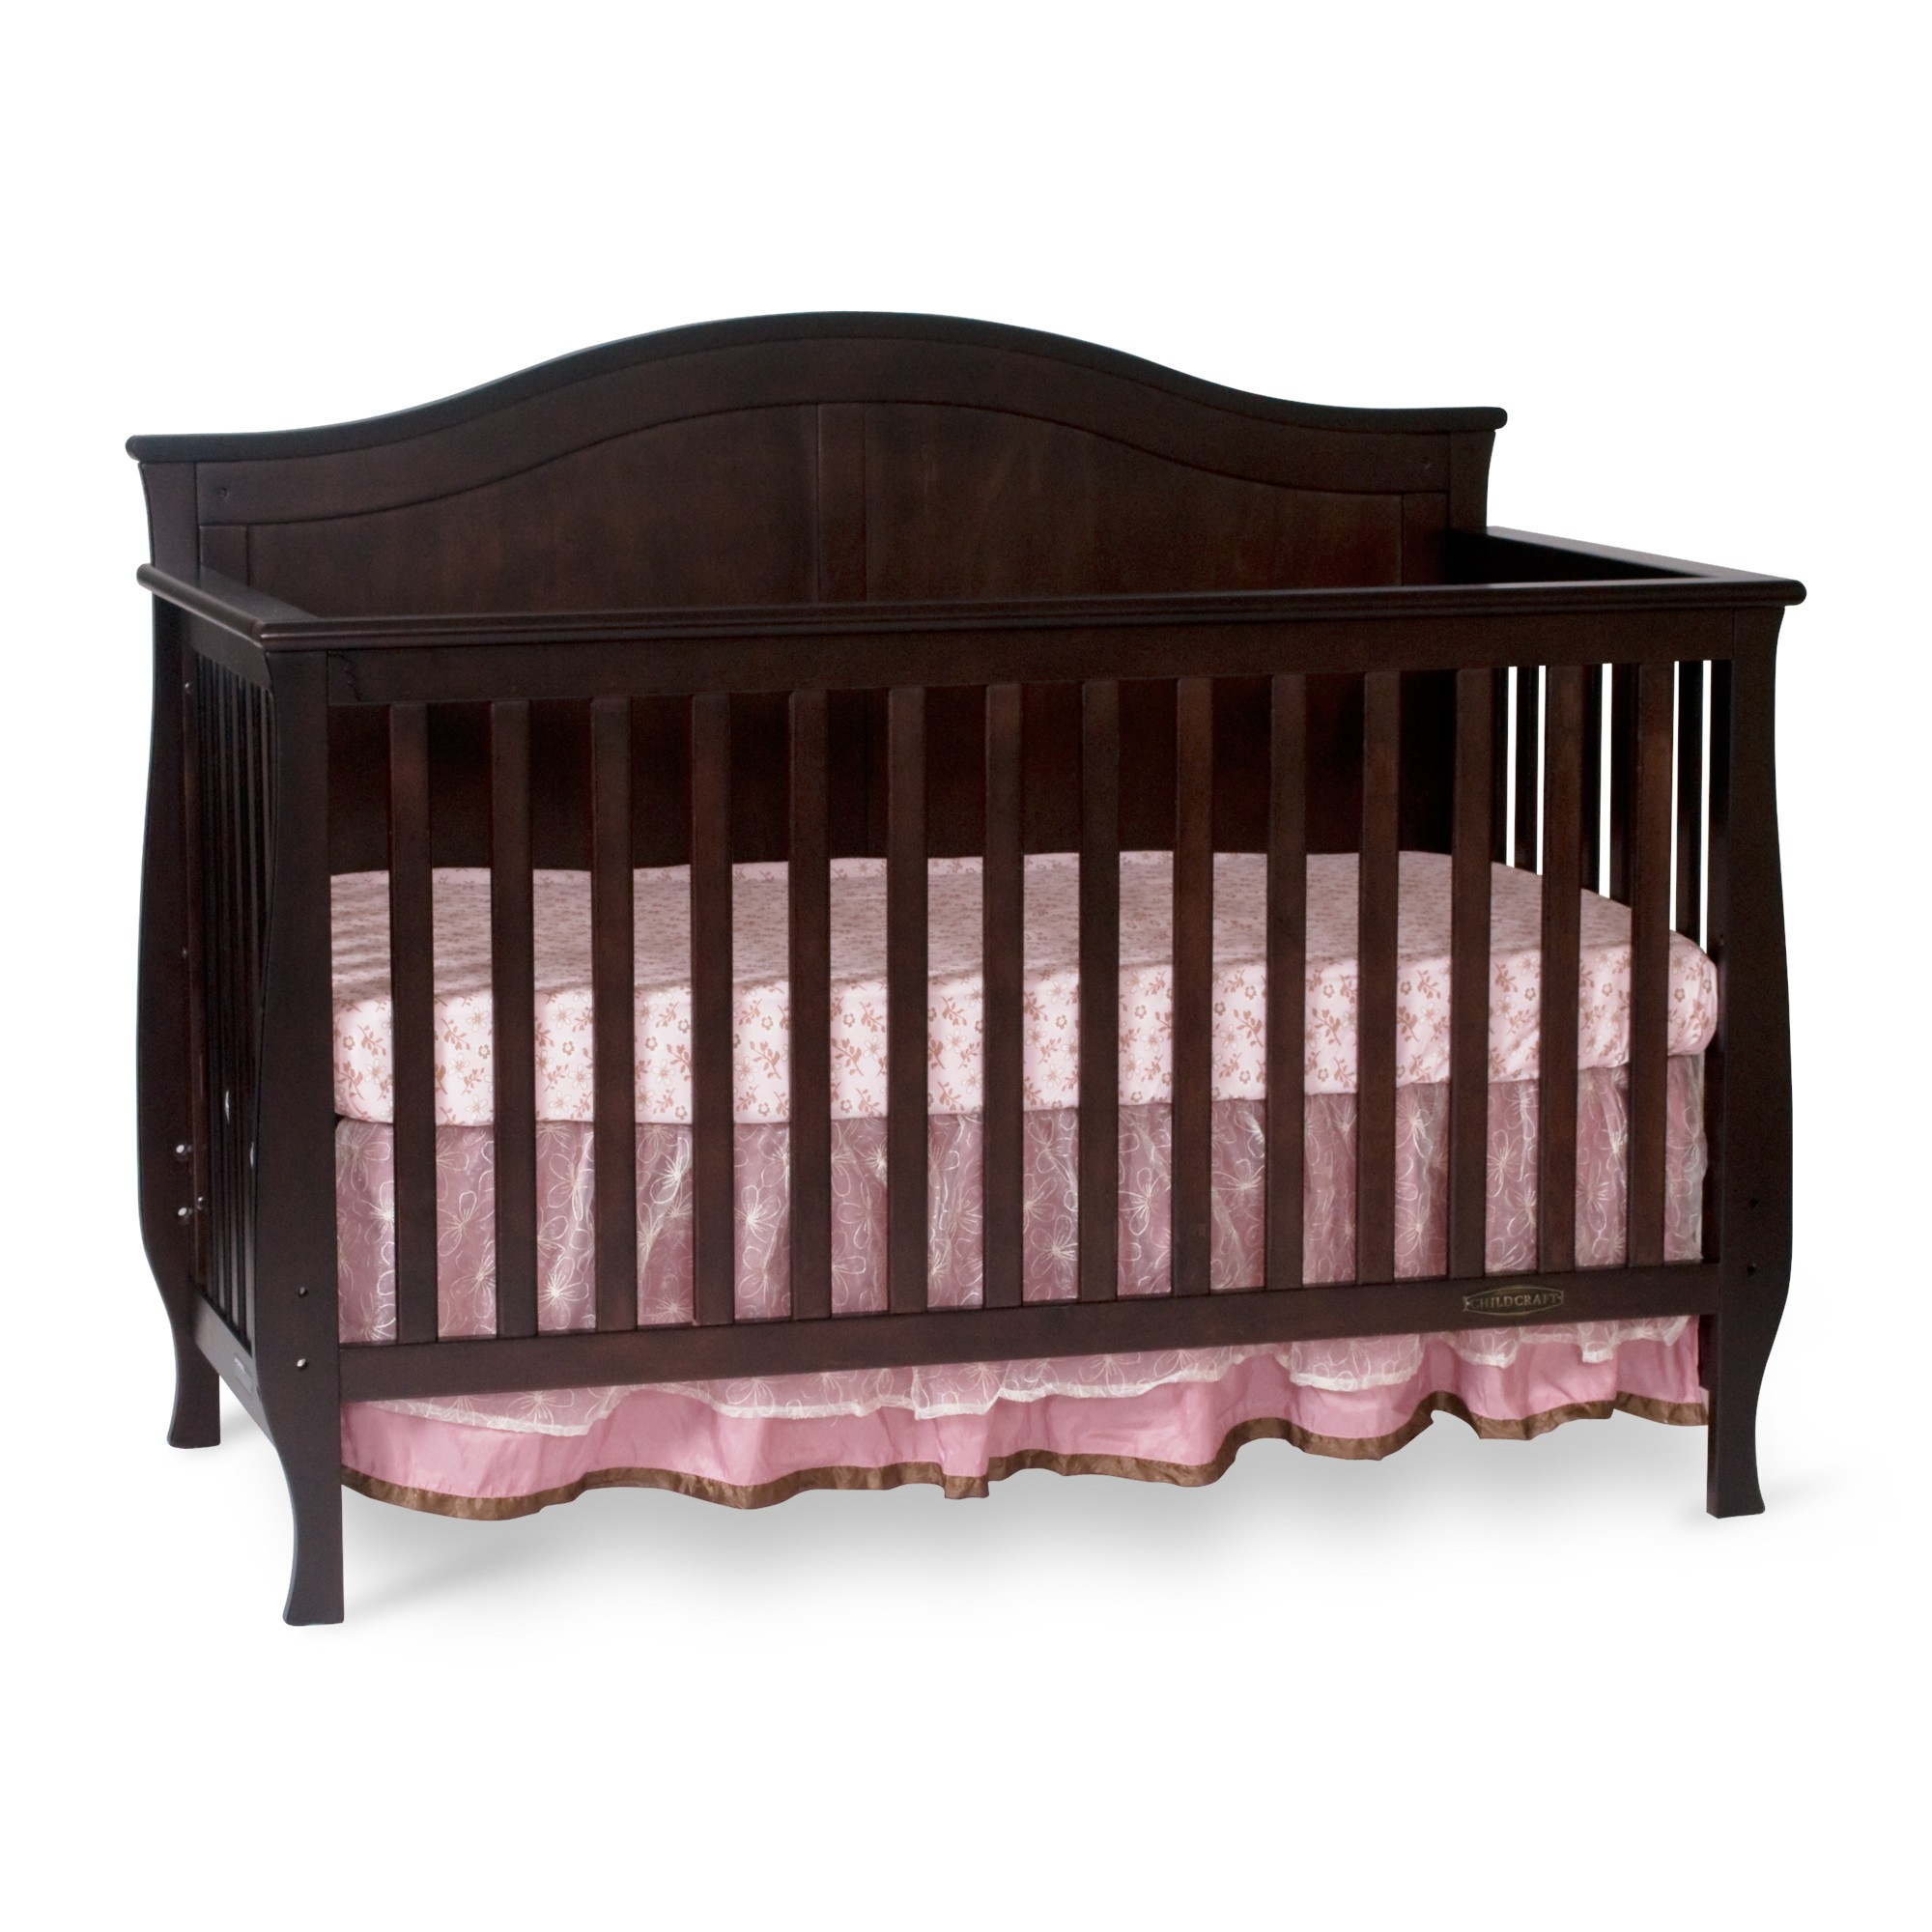 slate cribs craft child crib toddler in guard item rail convertible camden